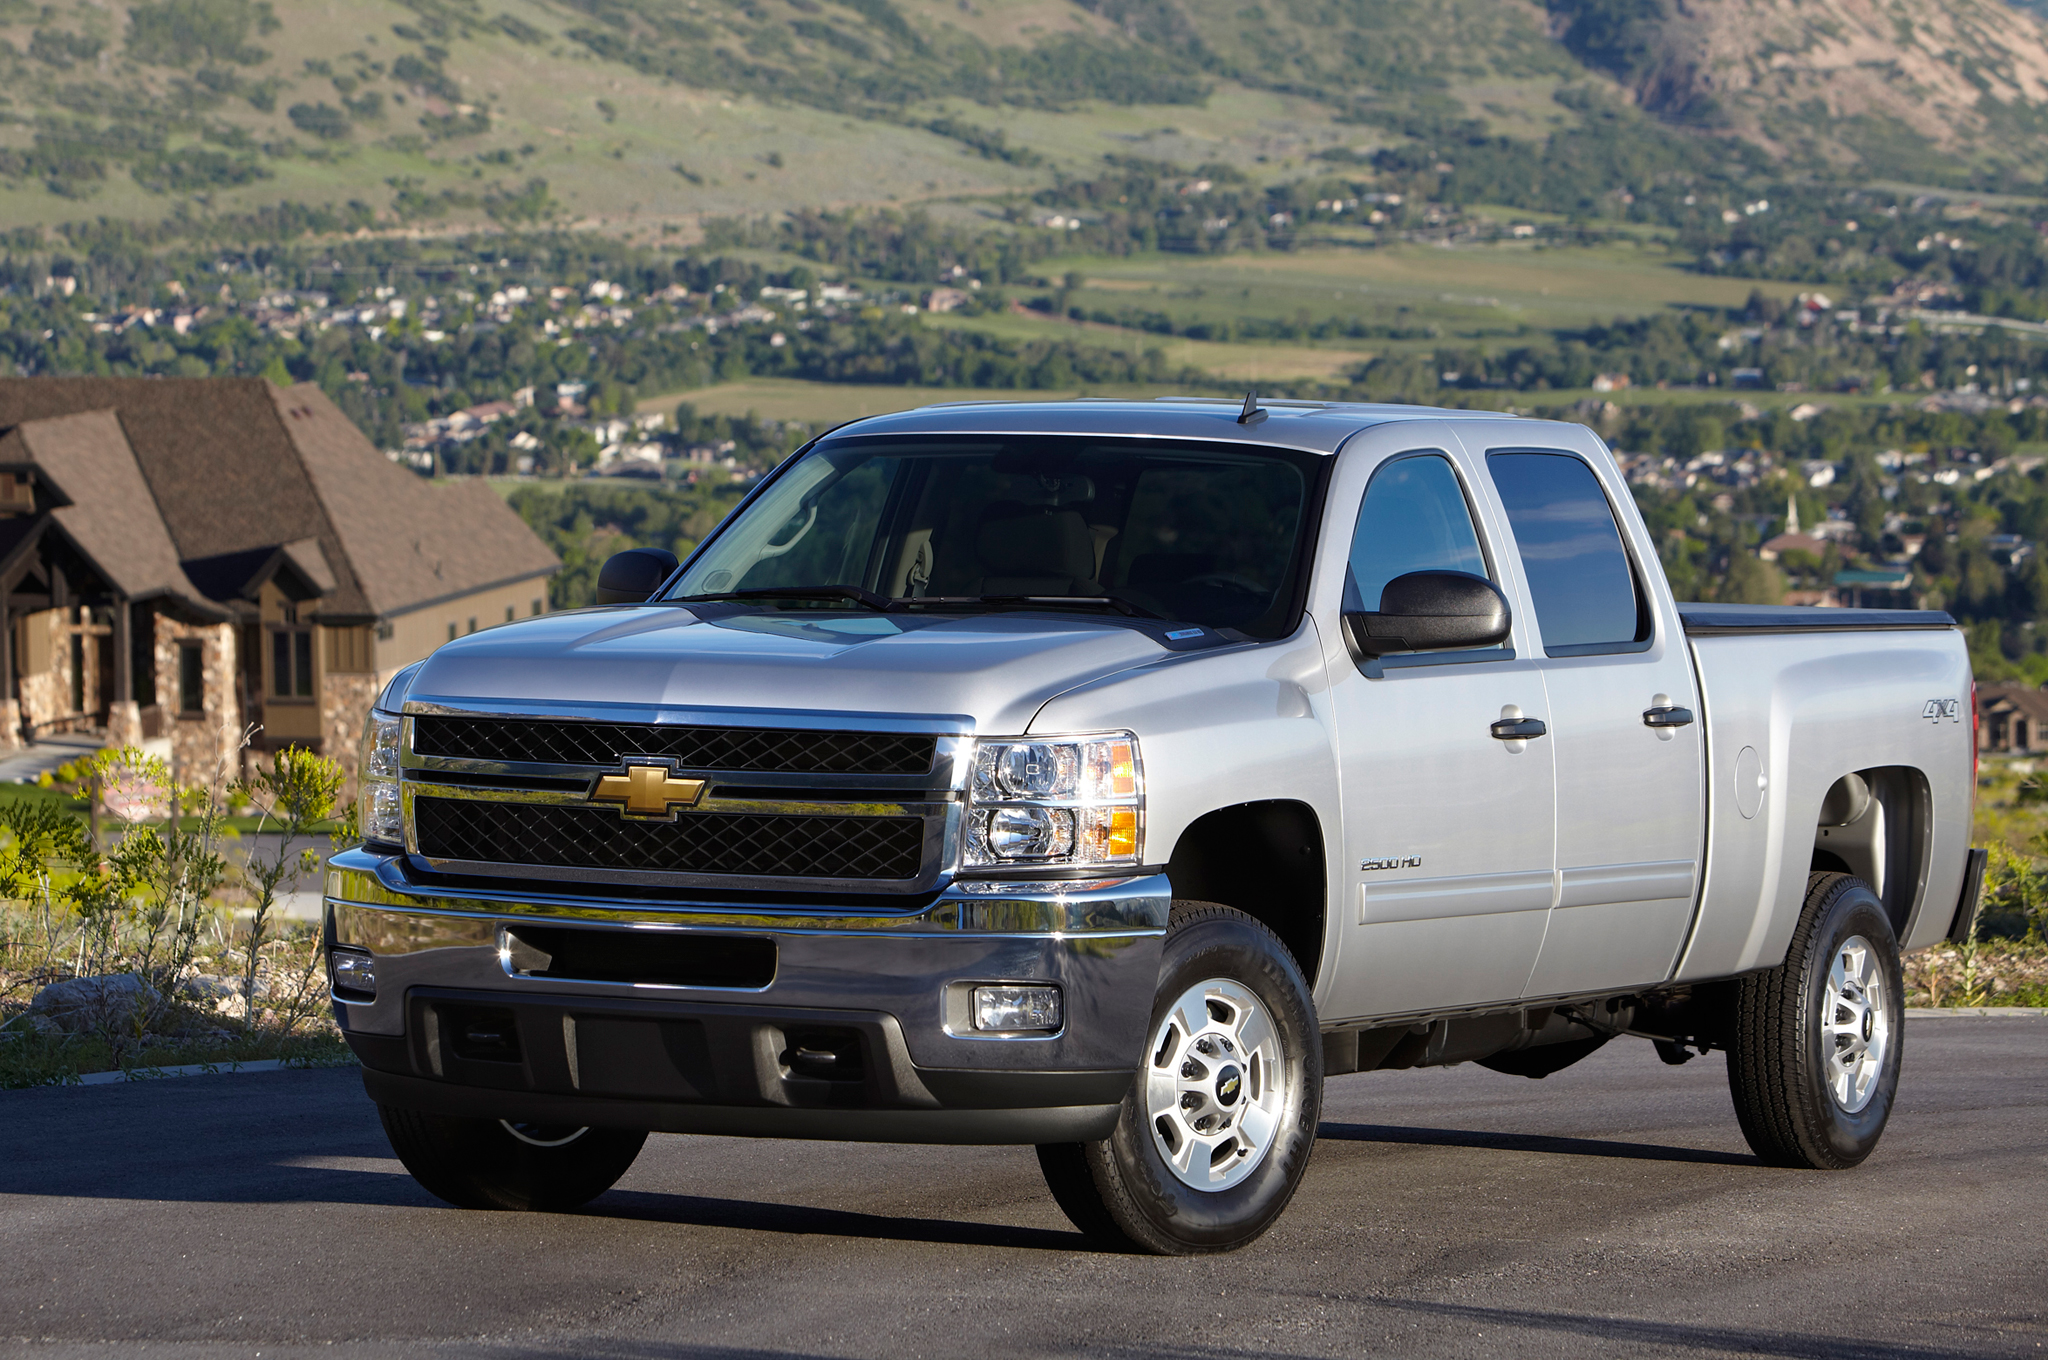 2014 chevrolet silverado 2500hd information and photos. Black Bedroom Furniture Sets. Home Design Ideas